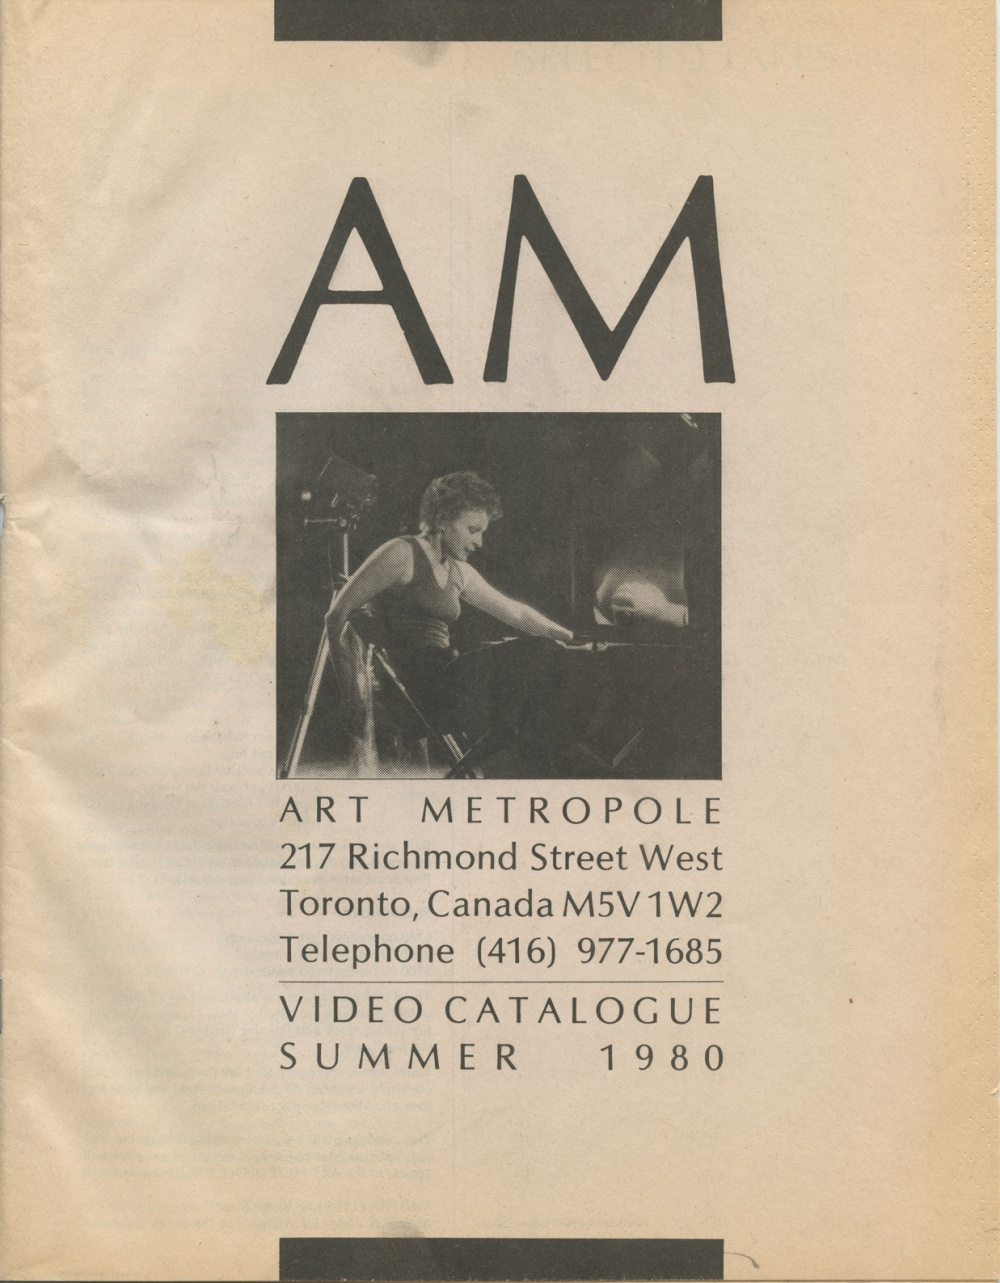 AM. Video Catalogue Summer 1980